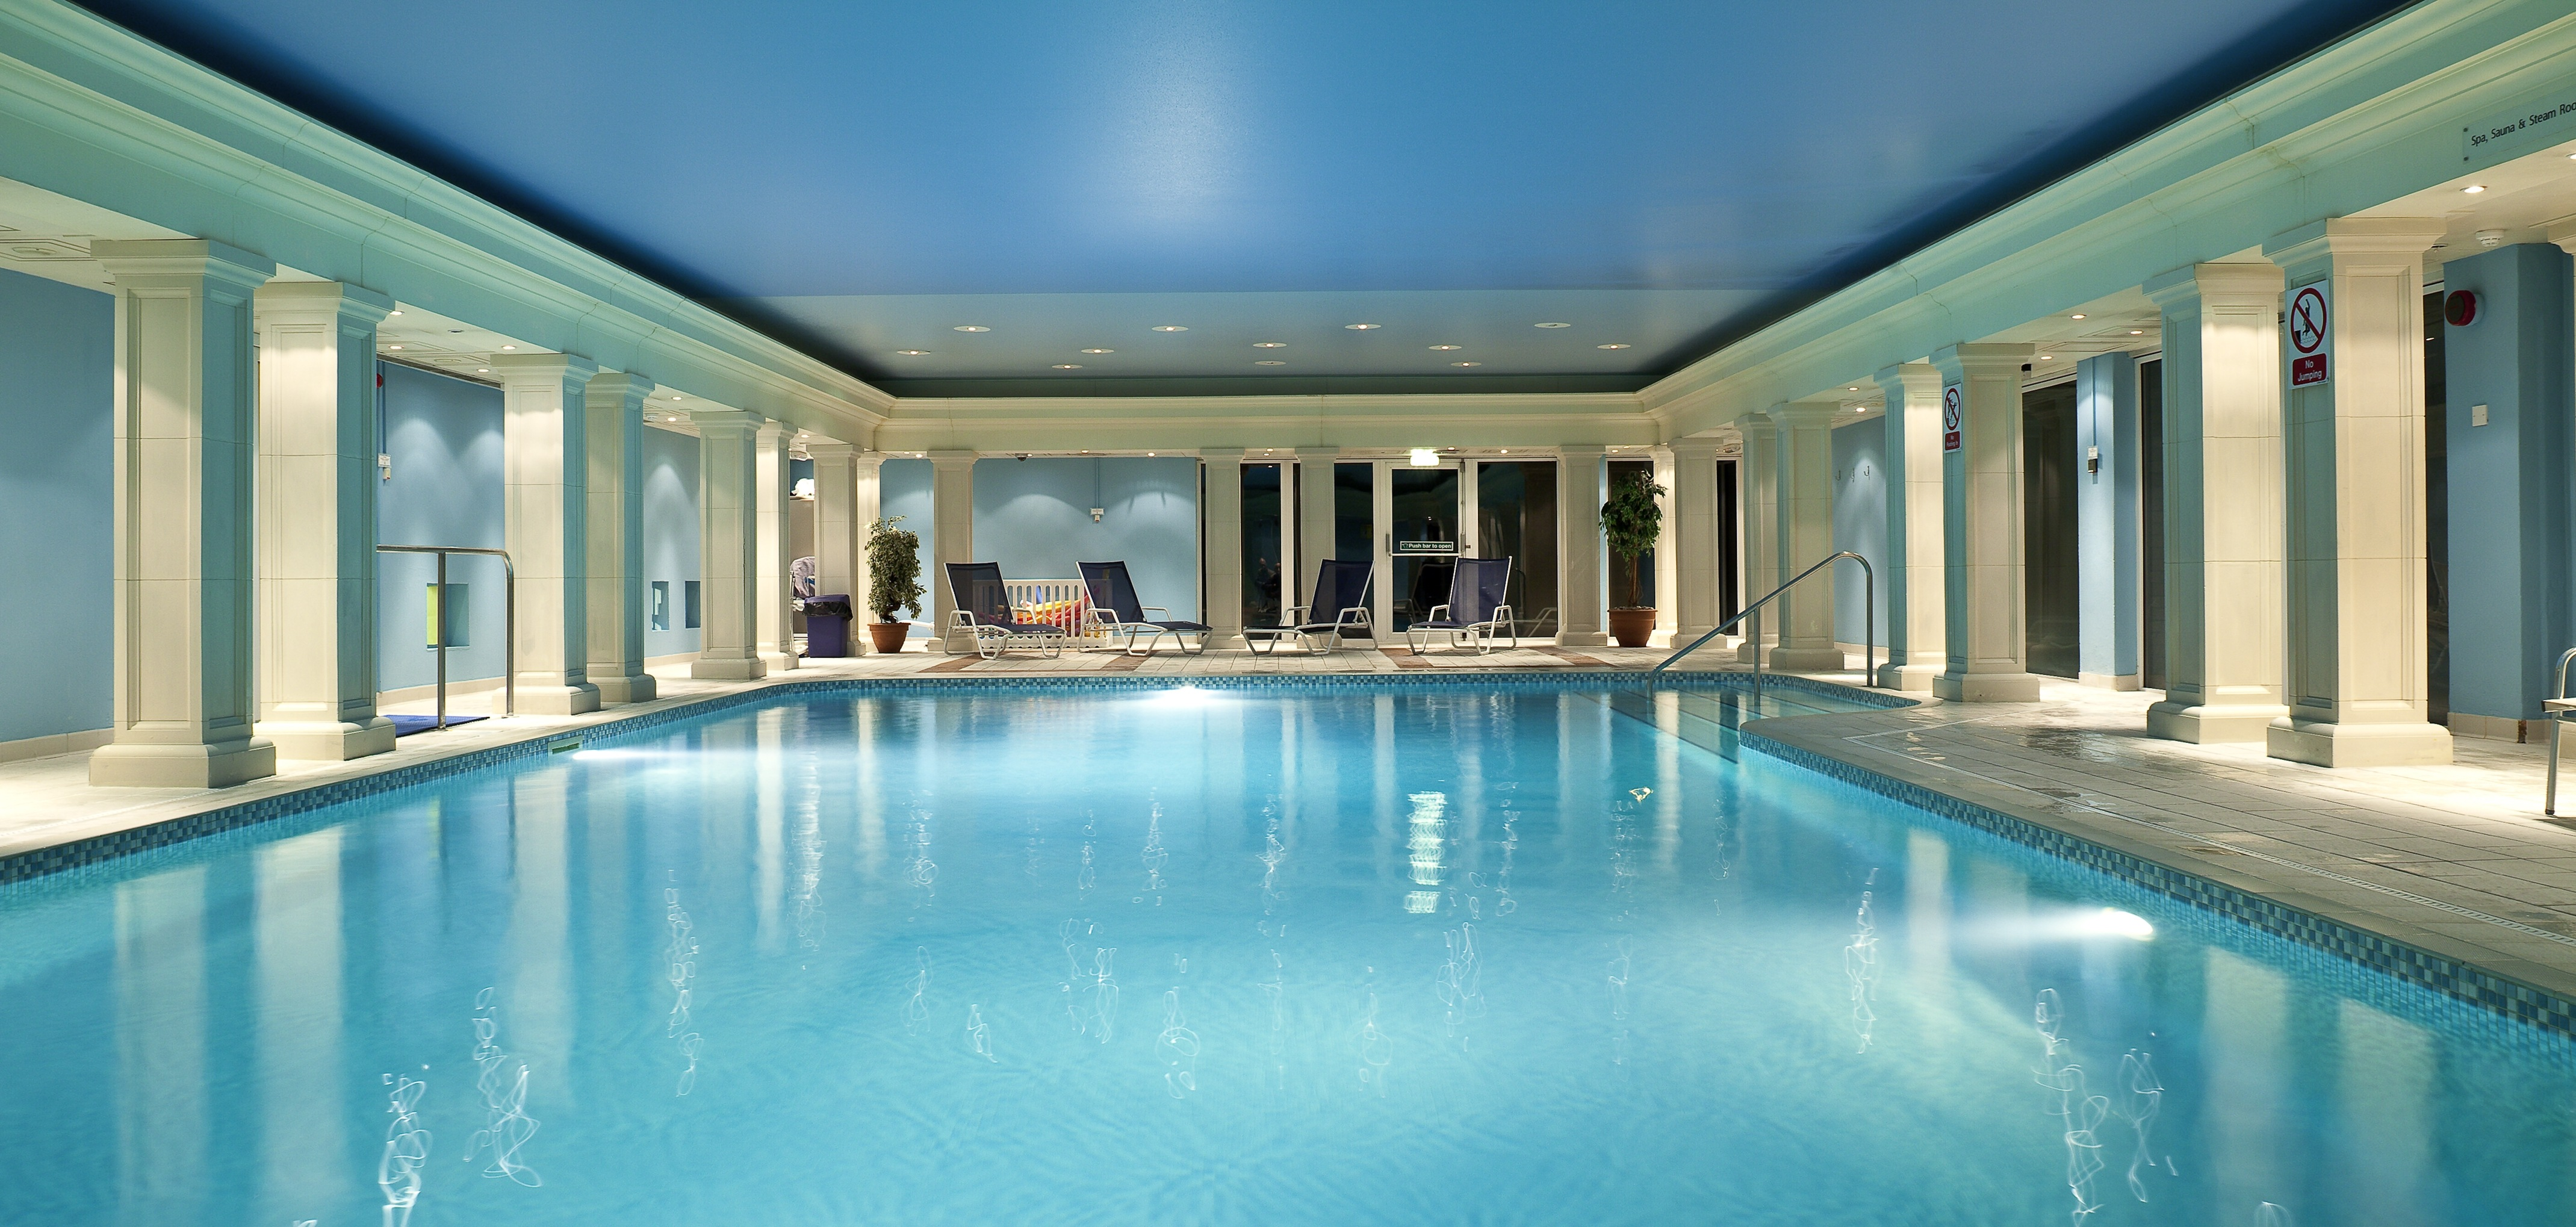 Relaxation Station Pool Lounge: Hythe Imperial Spa And Health Club